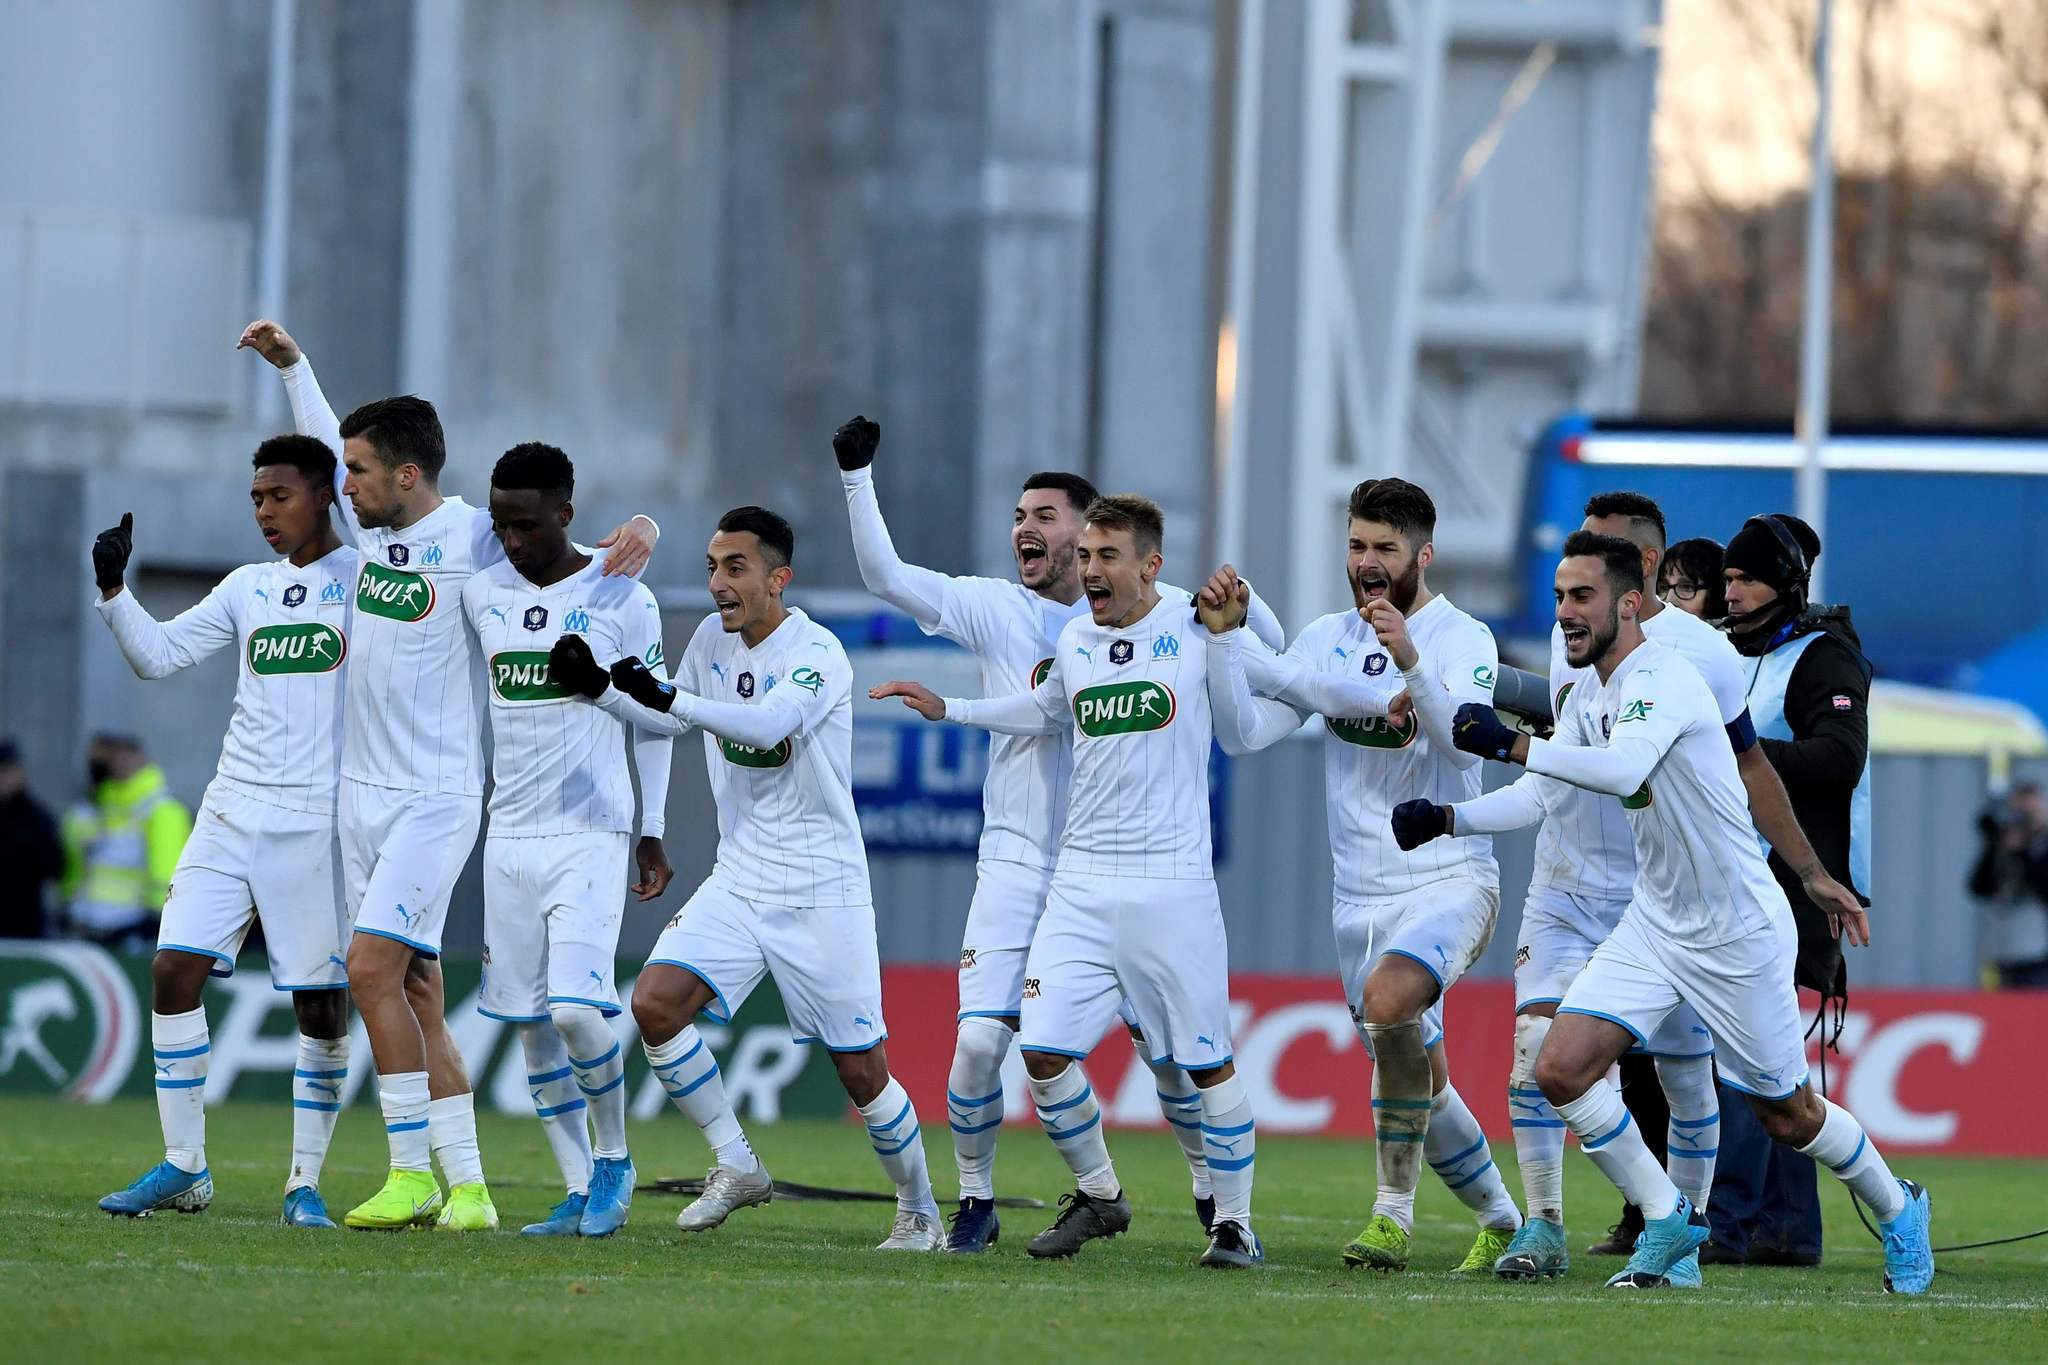 <HIT>Marseille</HIT>s players react after winning the French cup football match between Trelissac and <HIT>Marseille</HIT> on January 5, 2020, at the Beaublanc stadium in Limoges, central France. (Photo by NICOLAS TUCAT / AFP)